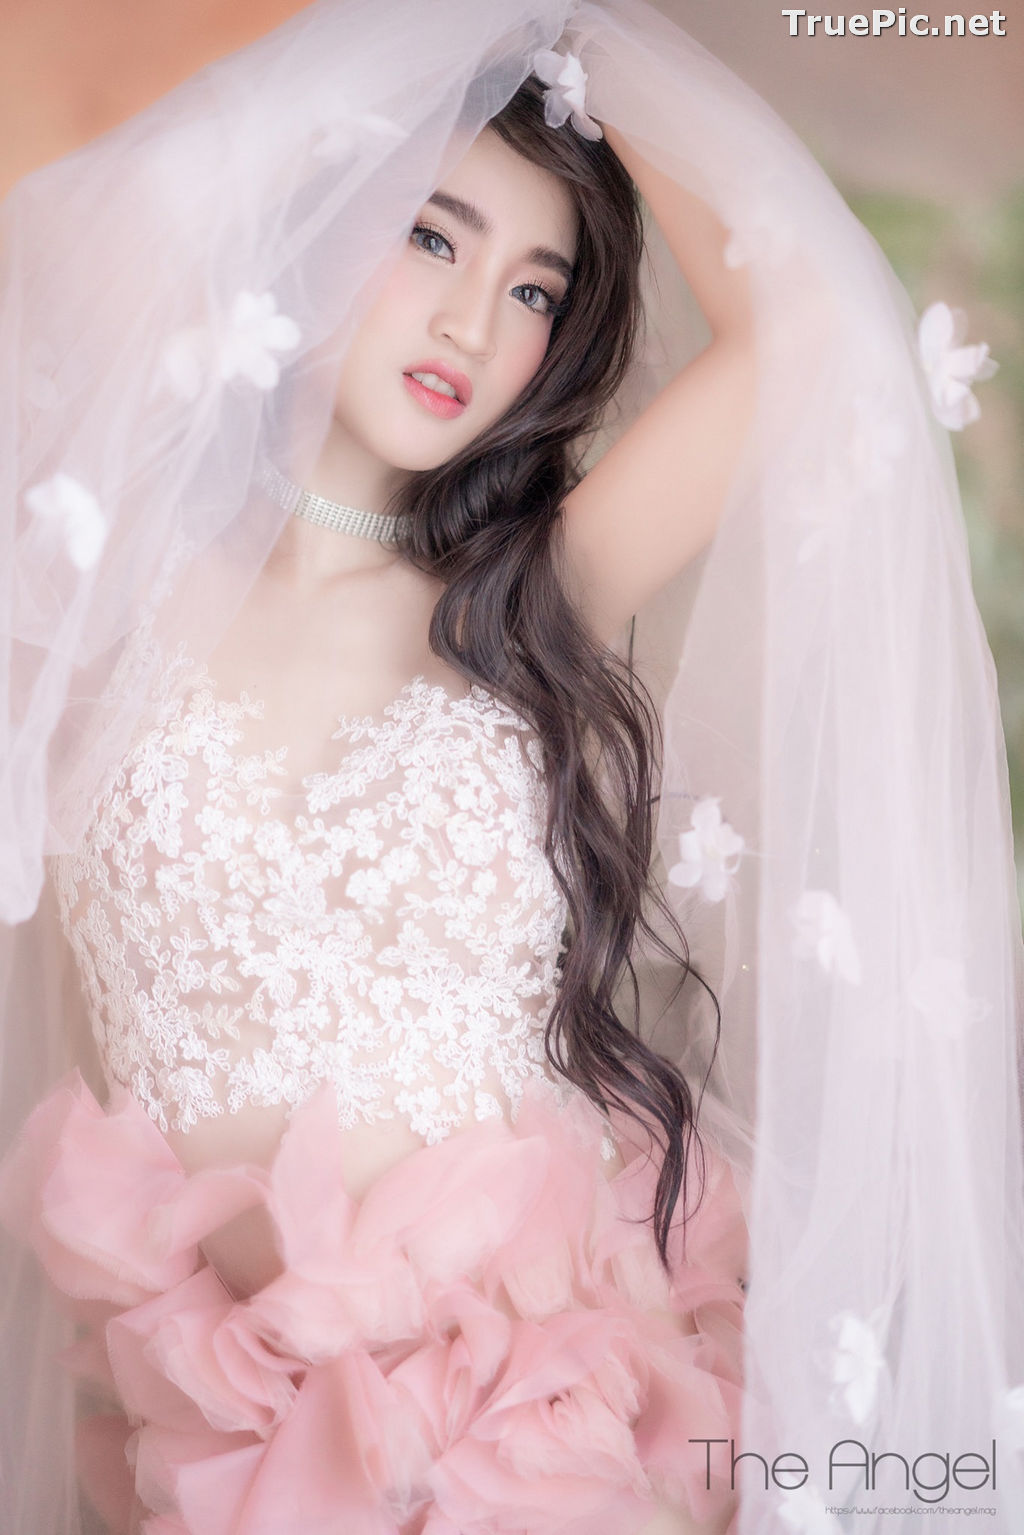 Image Thailand Model - Minggomut Maming Kongsawas - Beautiful Bride Concept - TruePic.net - Picture-5